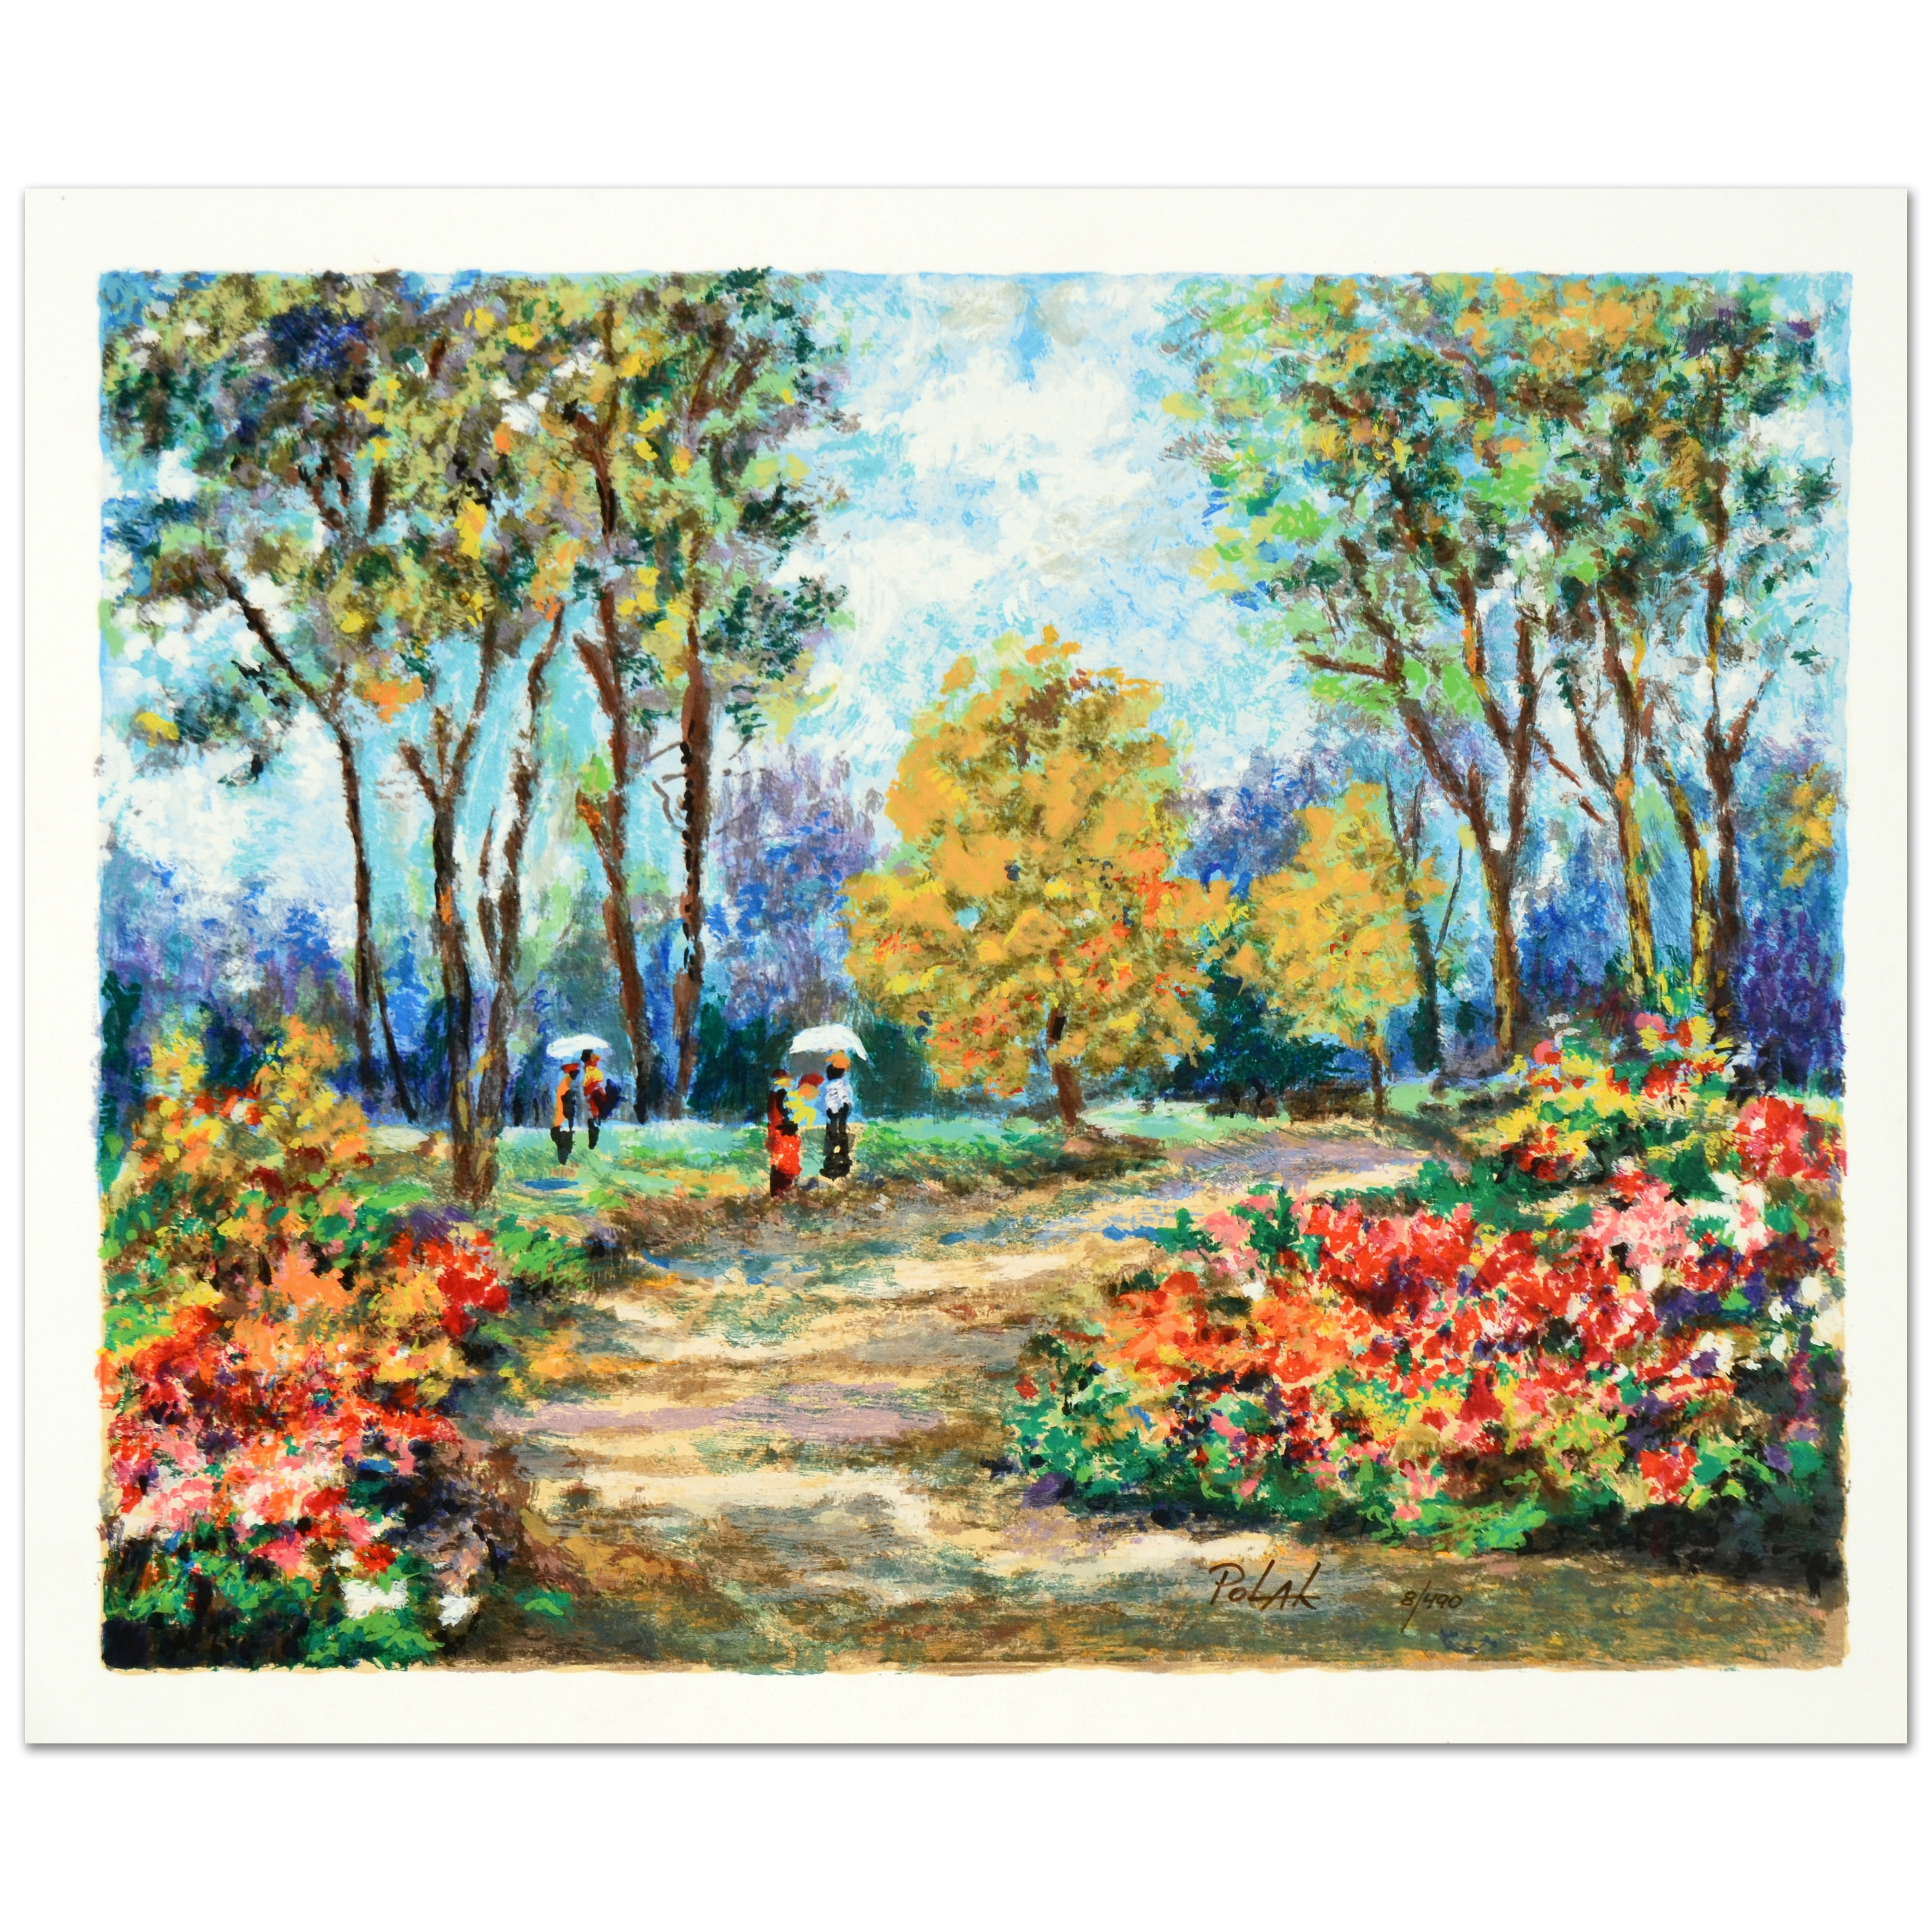 "Dimitri Polak Limited Edition Serigraph on Paper ""In the Park"""